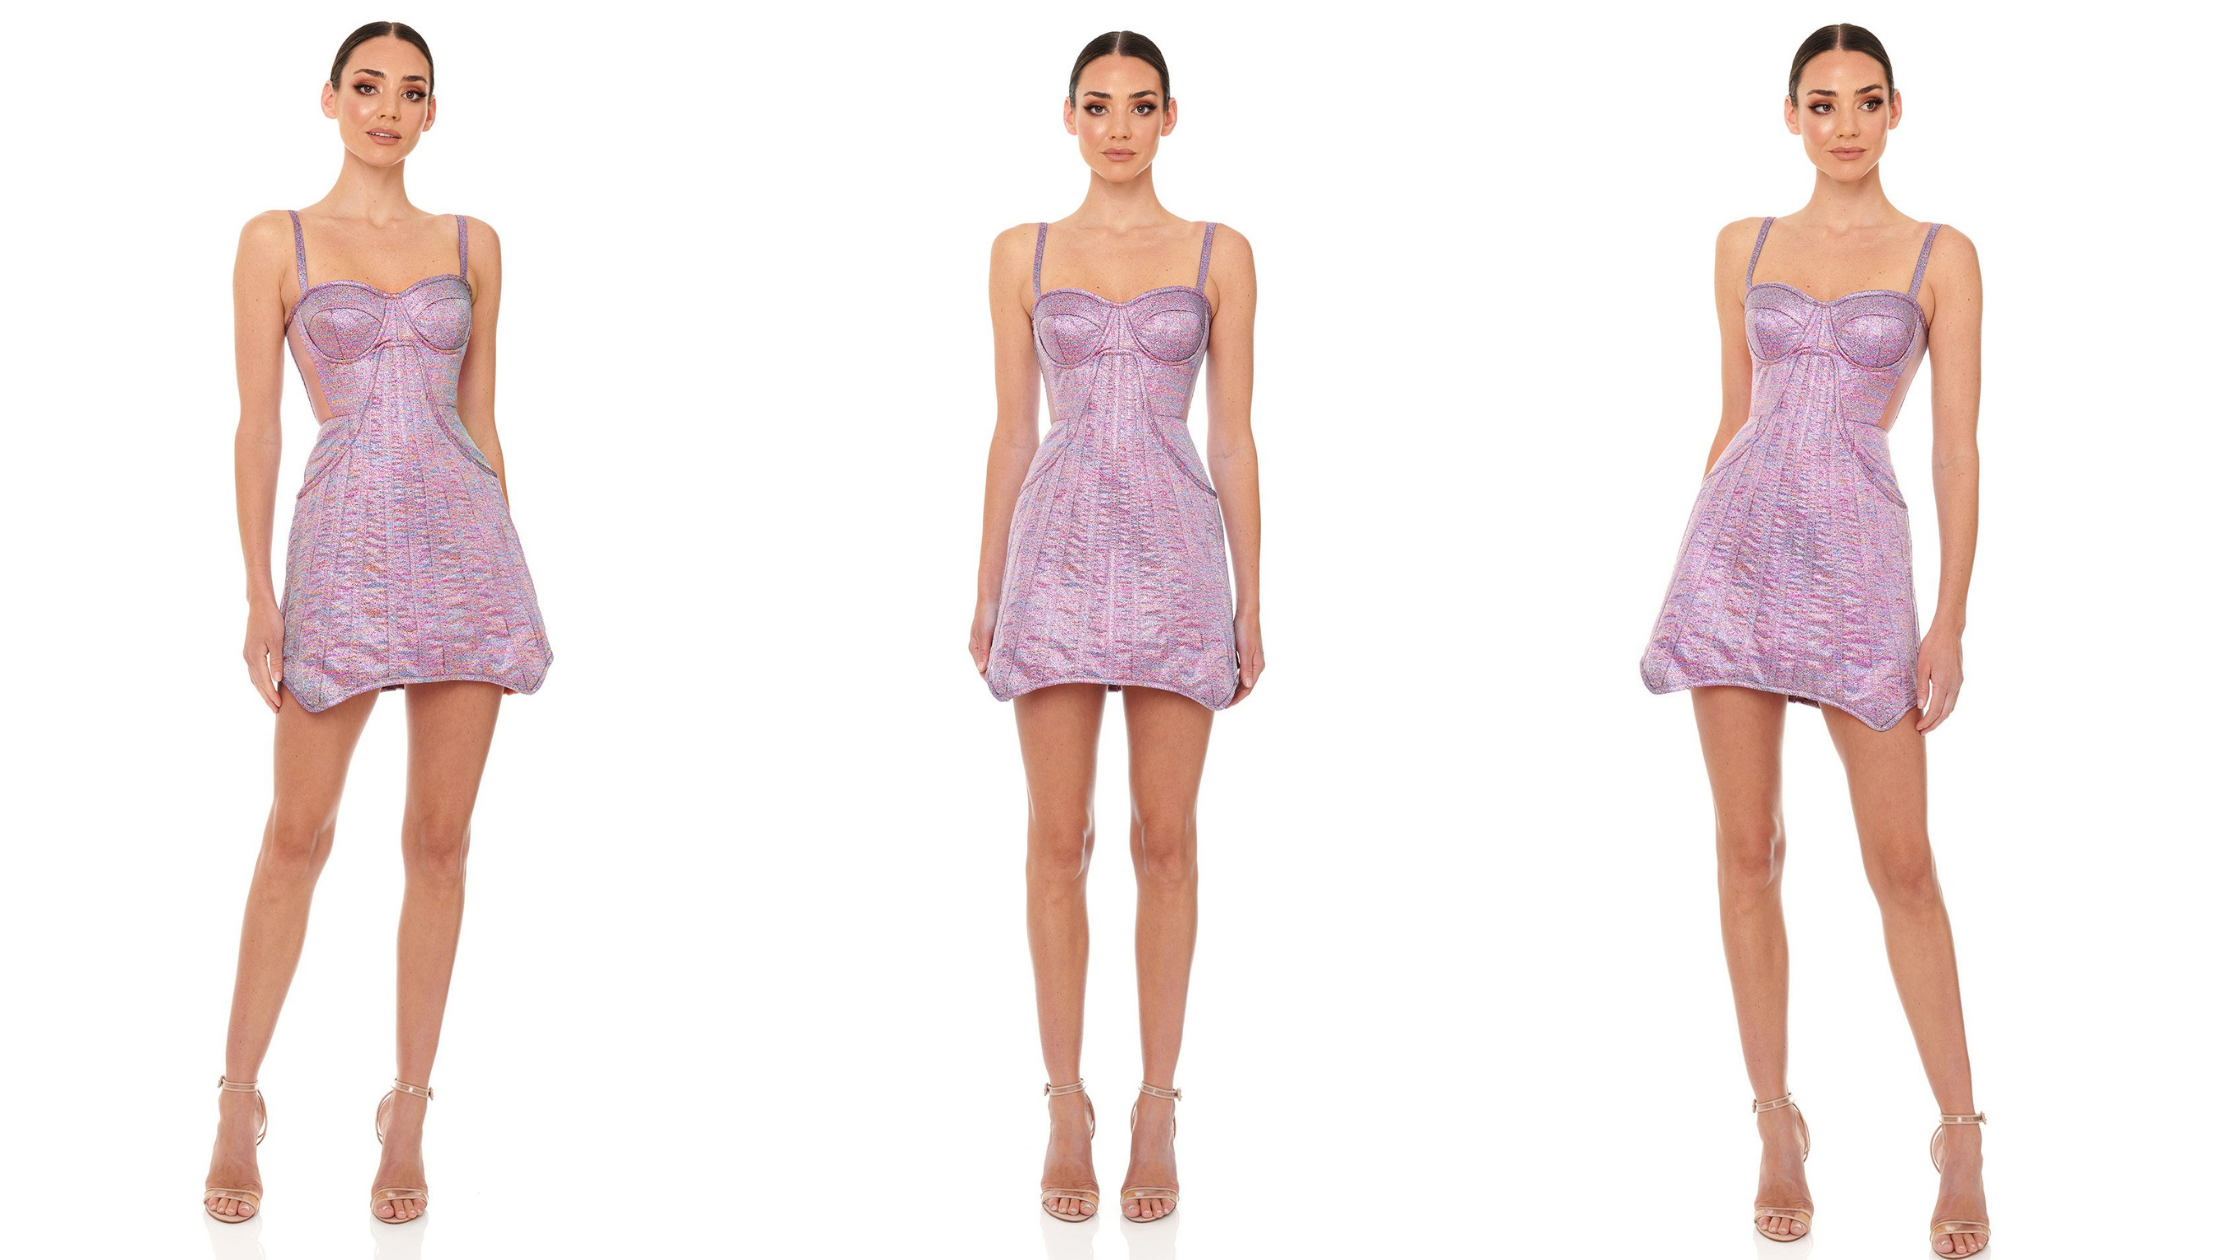 https://zetoni.com.au/collections/must-have-sparkly-and-sexy-outfits/products/bec-dress